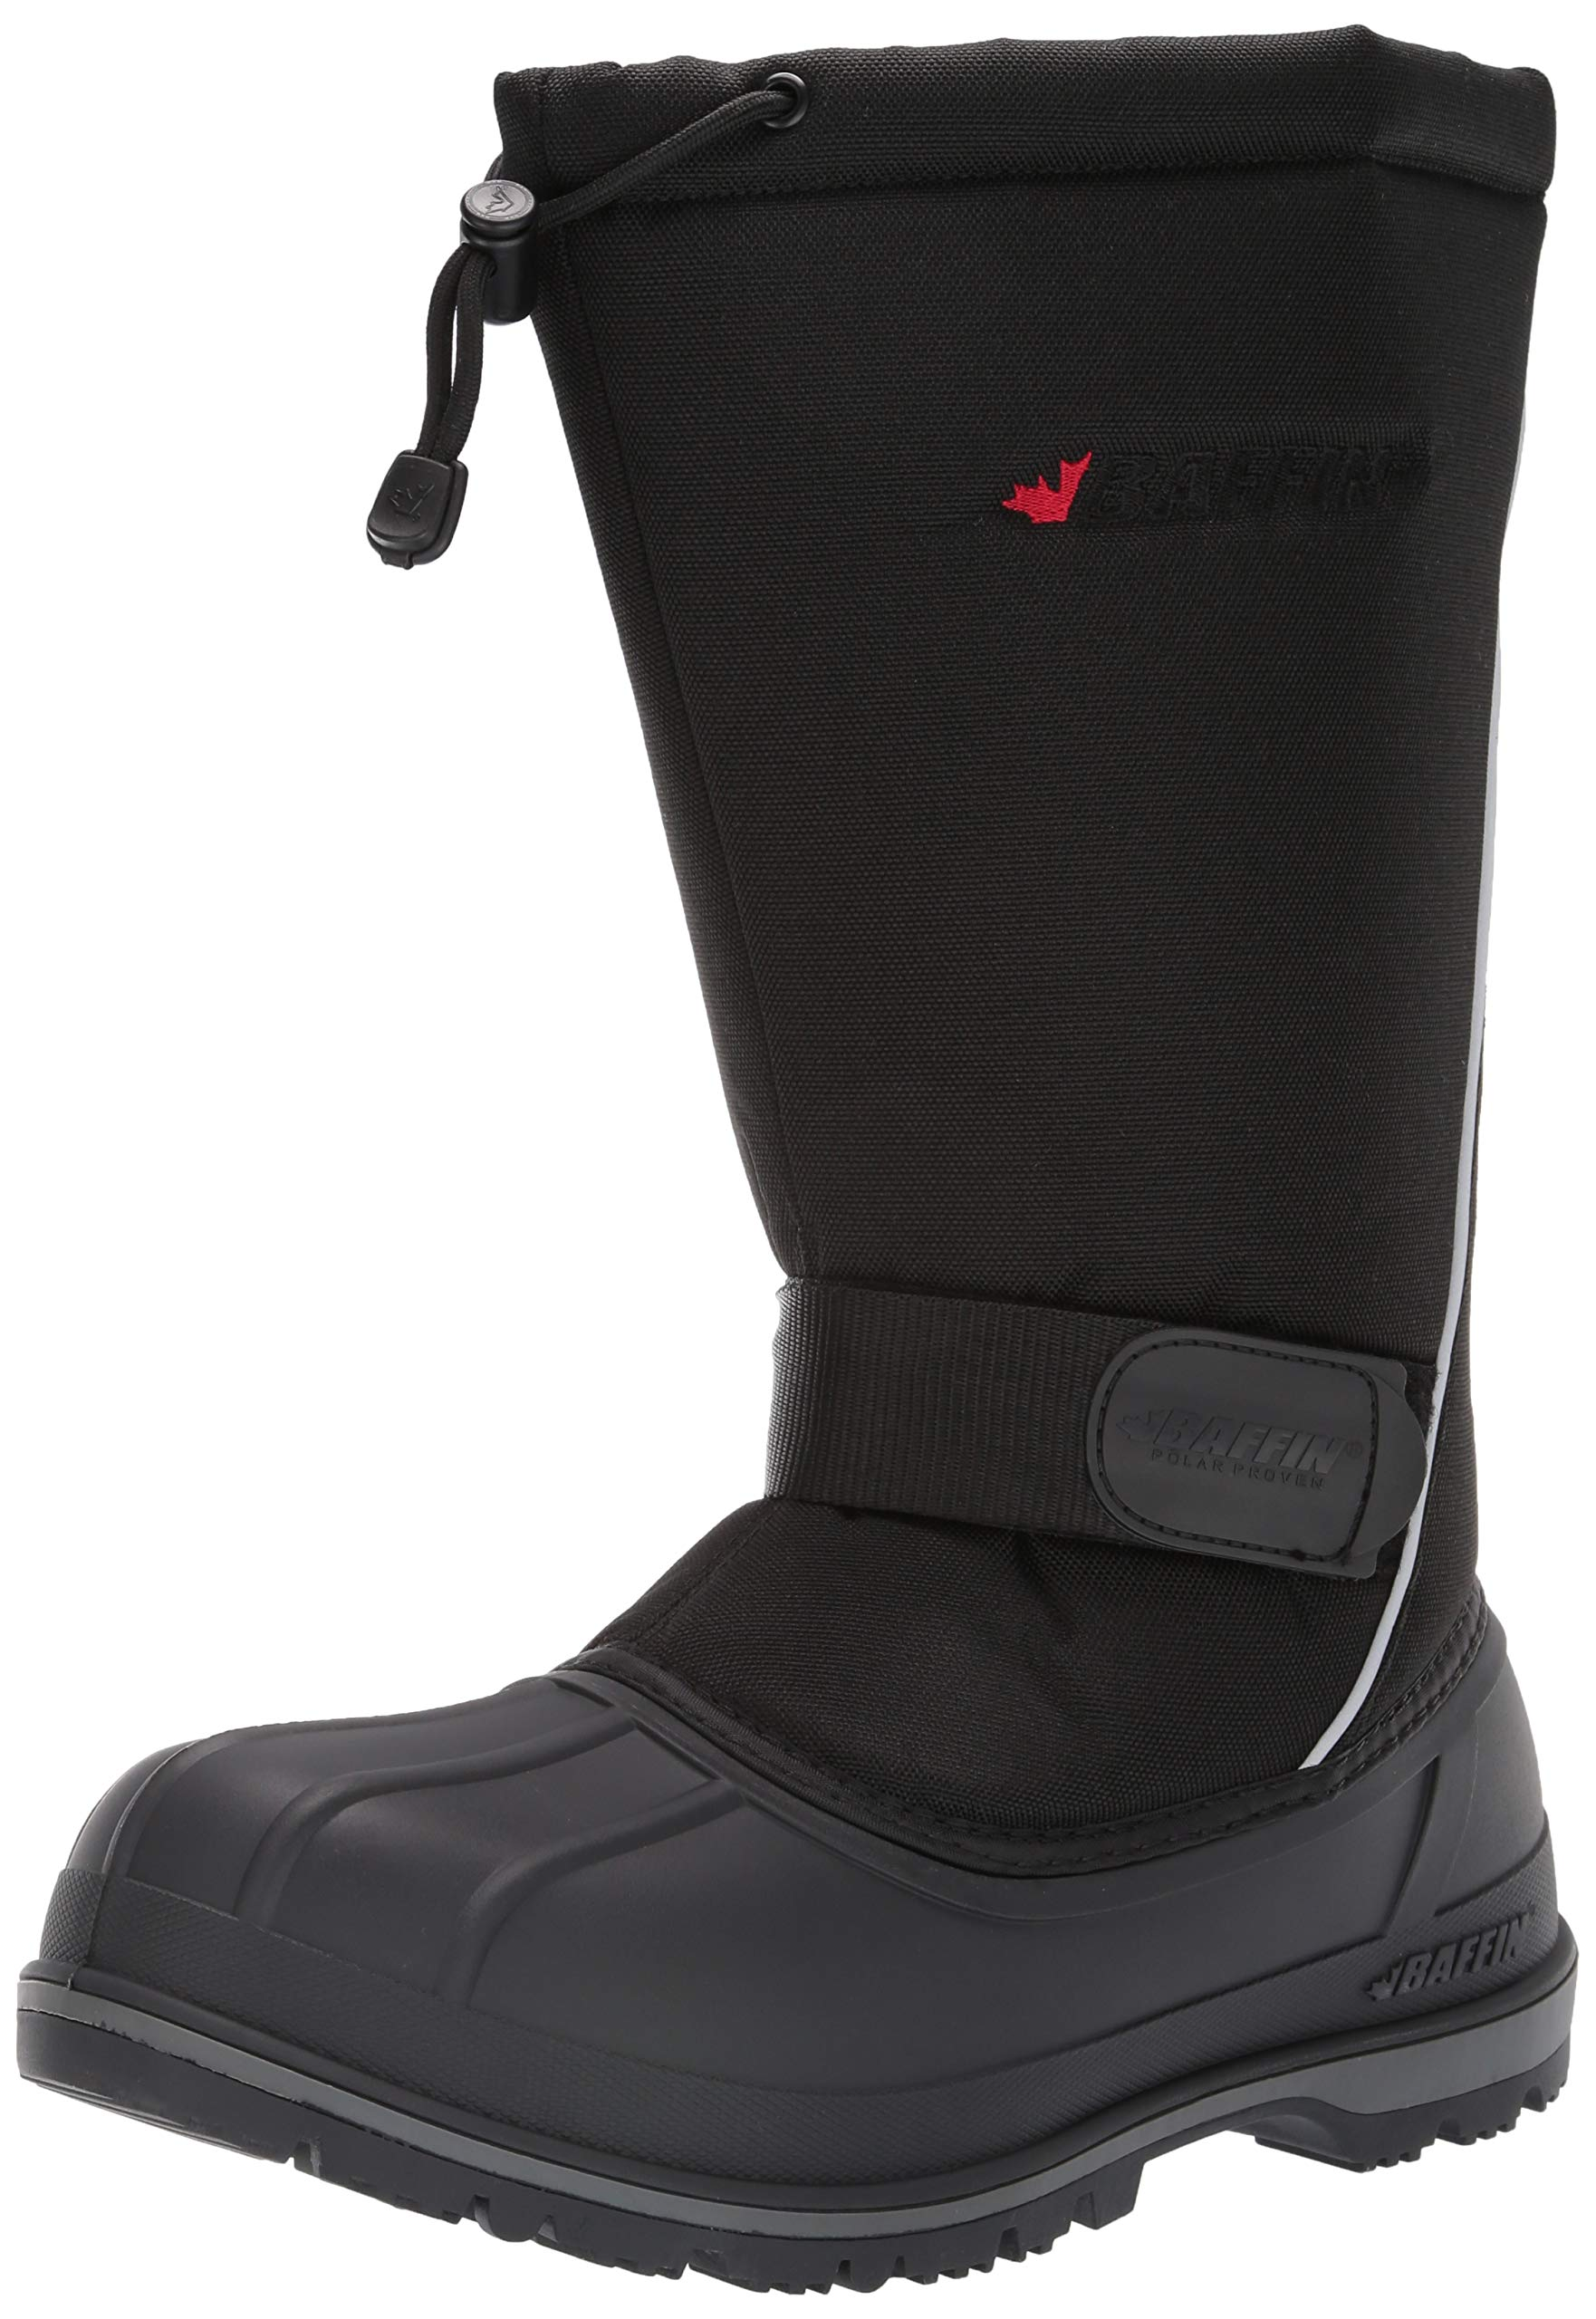 Baffin Mens Men's Northwest Snow Boot Black 9 Medium US by Baffin Mens